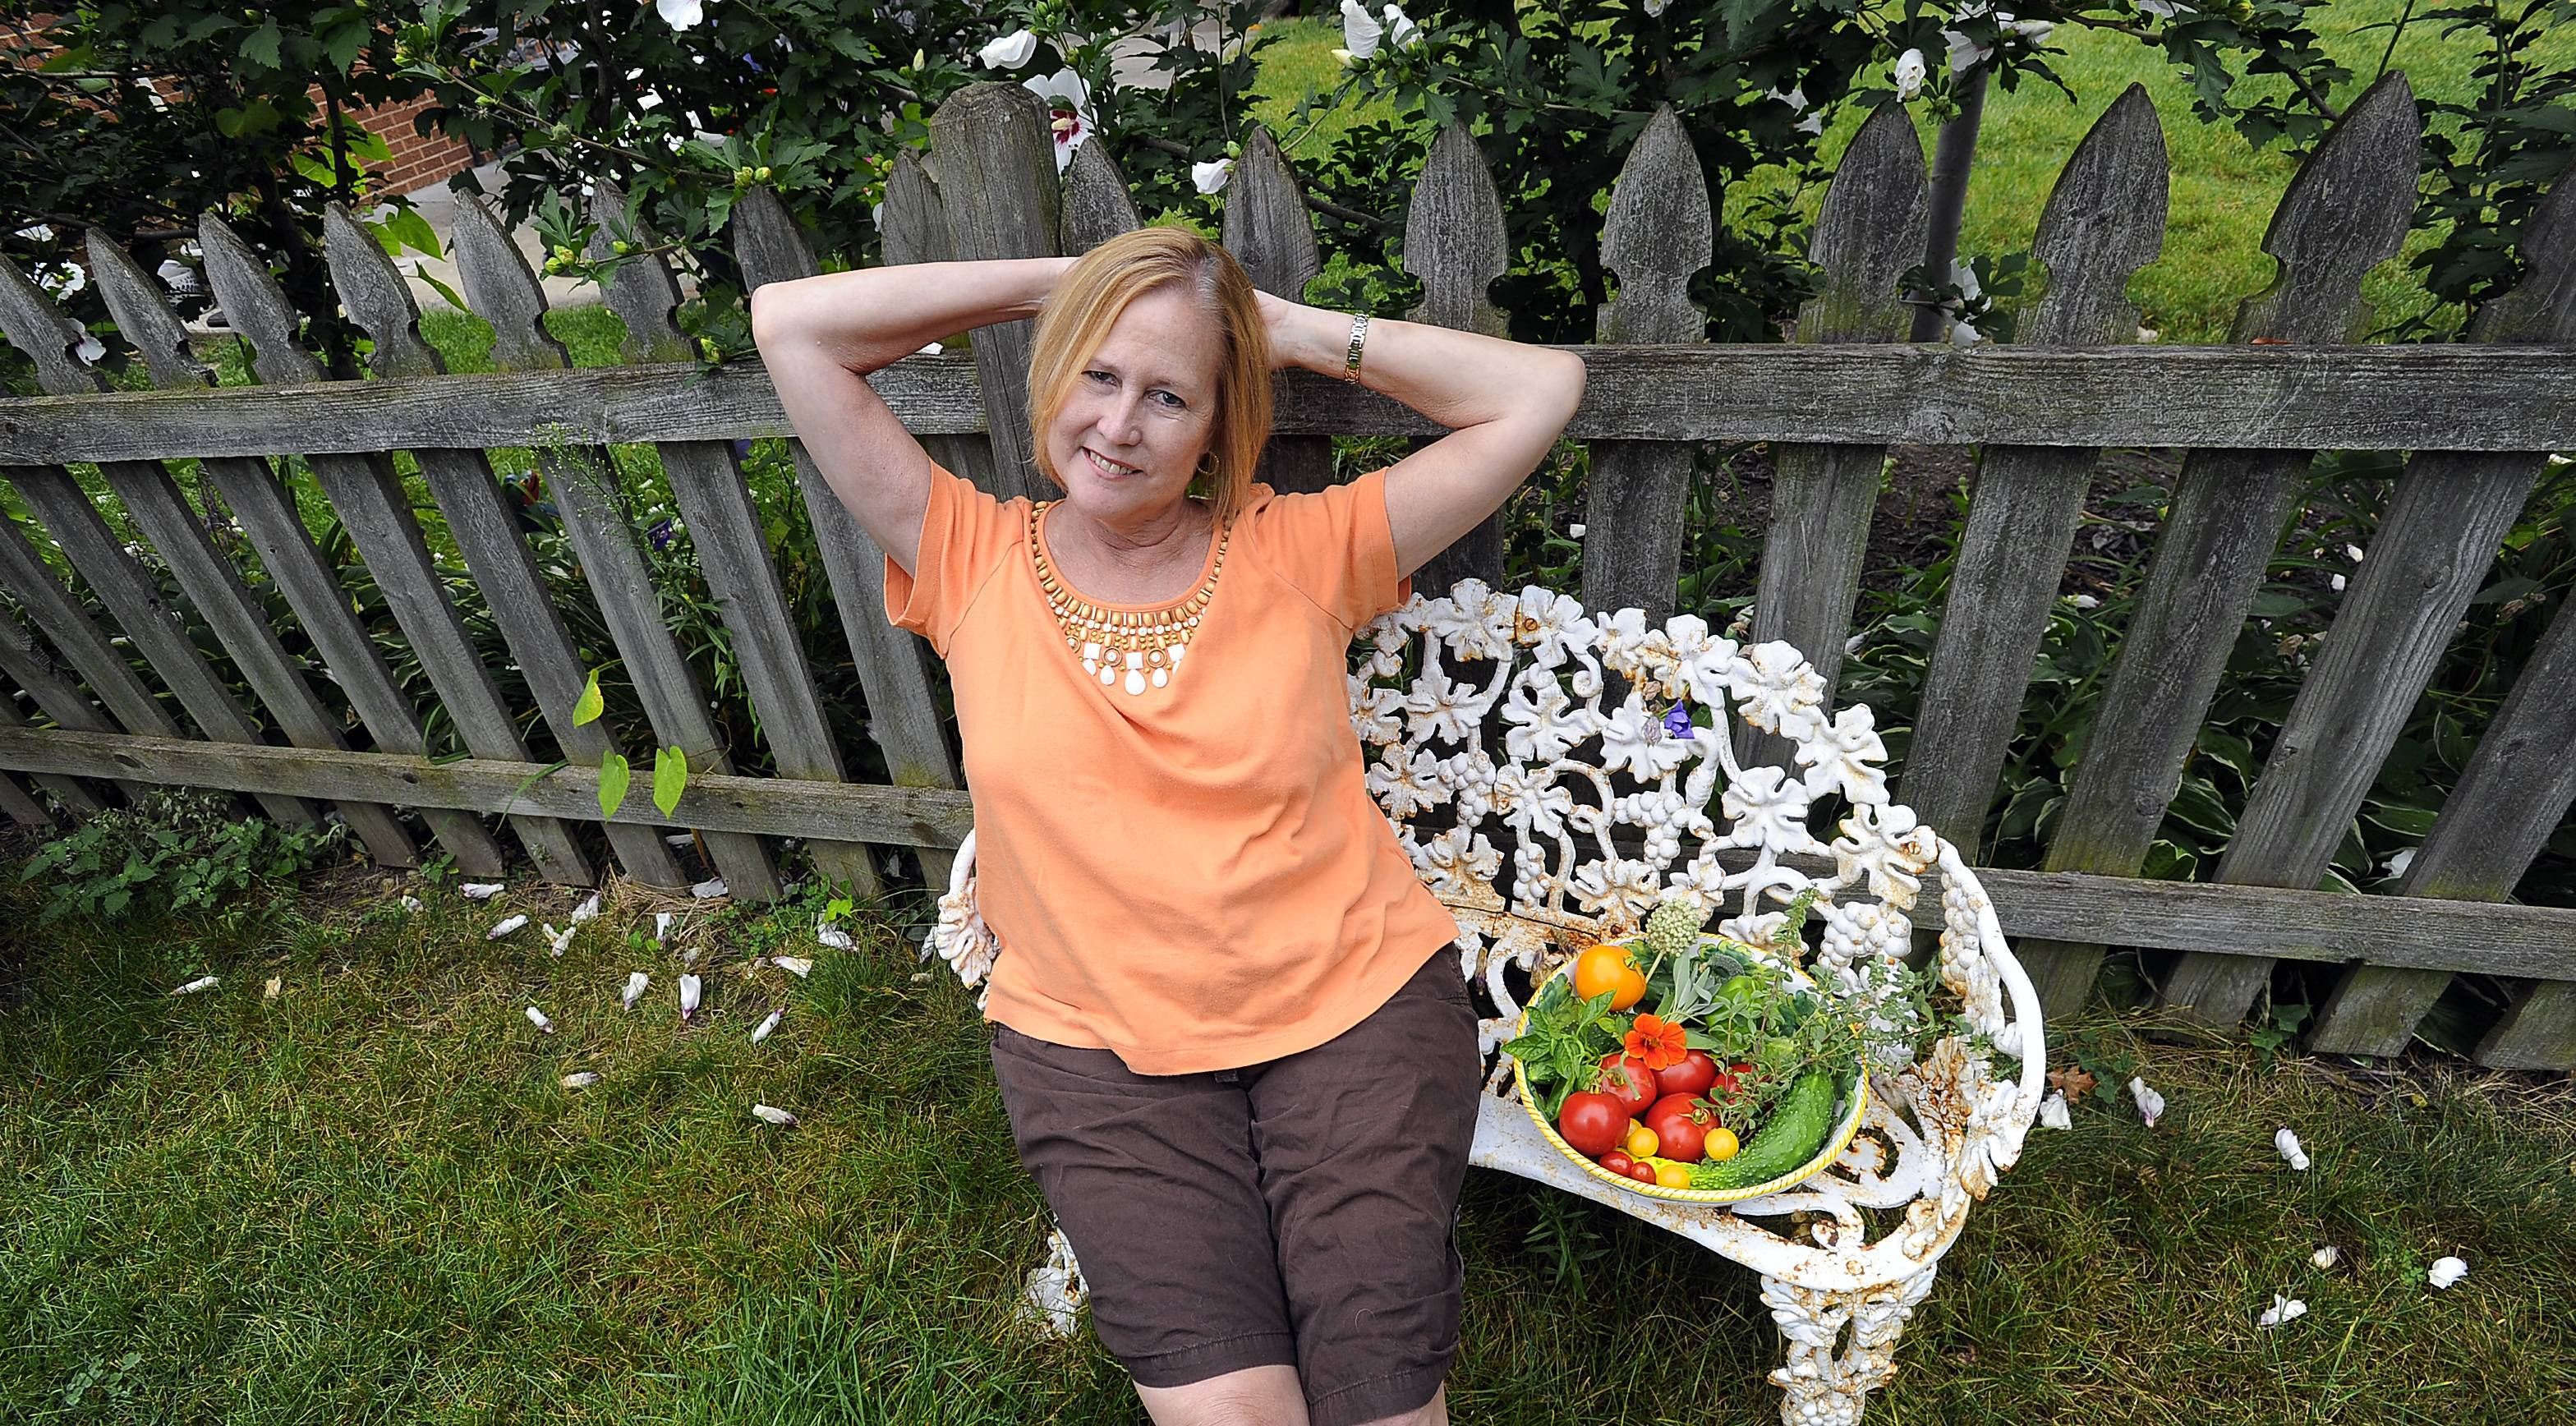 When she's not in the kitchen, Molly Sutton of Arlington Heights might be in her garden selecting vegetables for the evening meal.